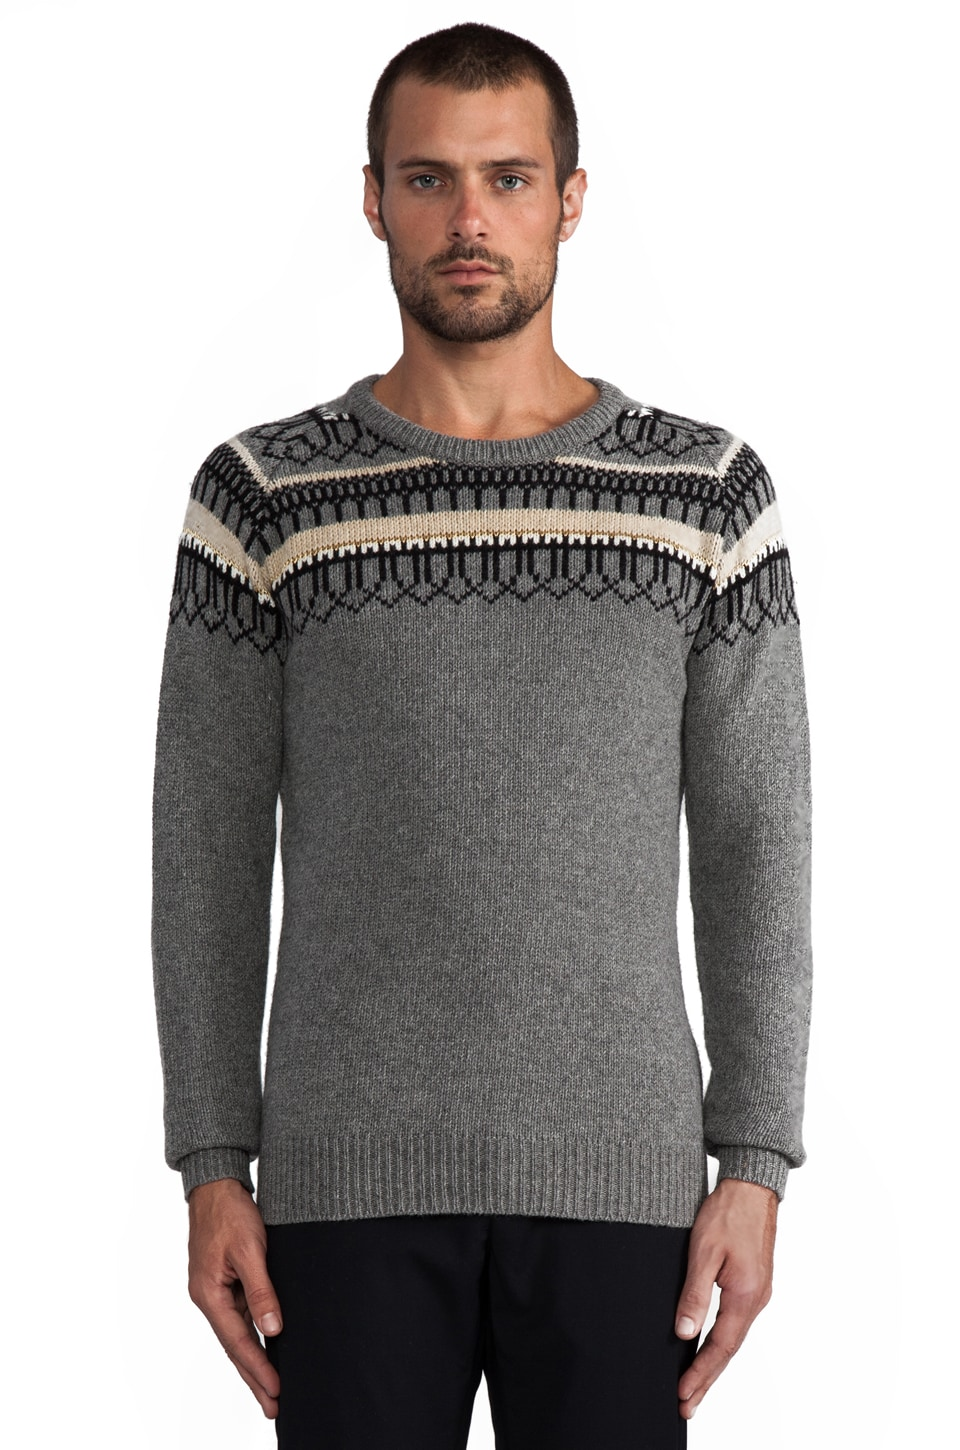 J. Lindeberg Finn Jacquard Sweater in Light Grey Melange